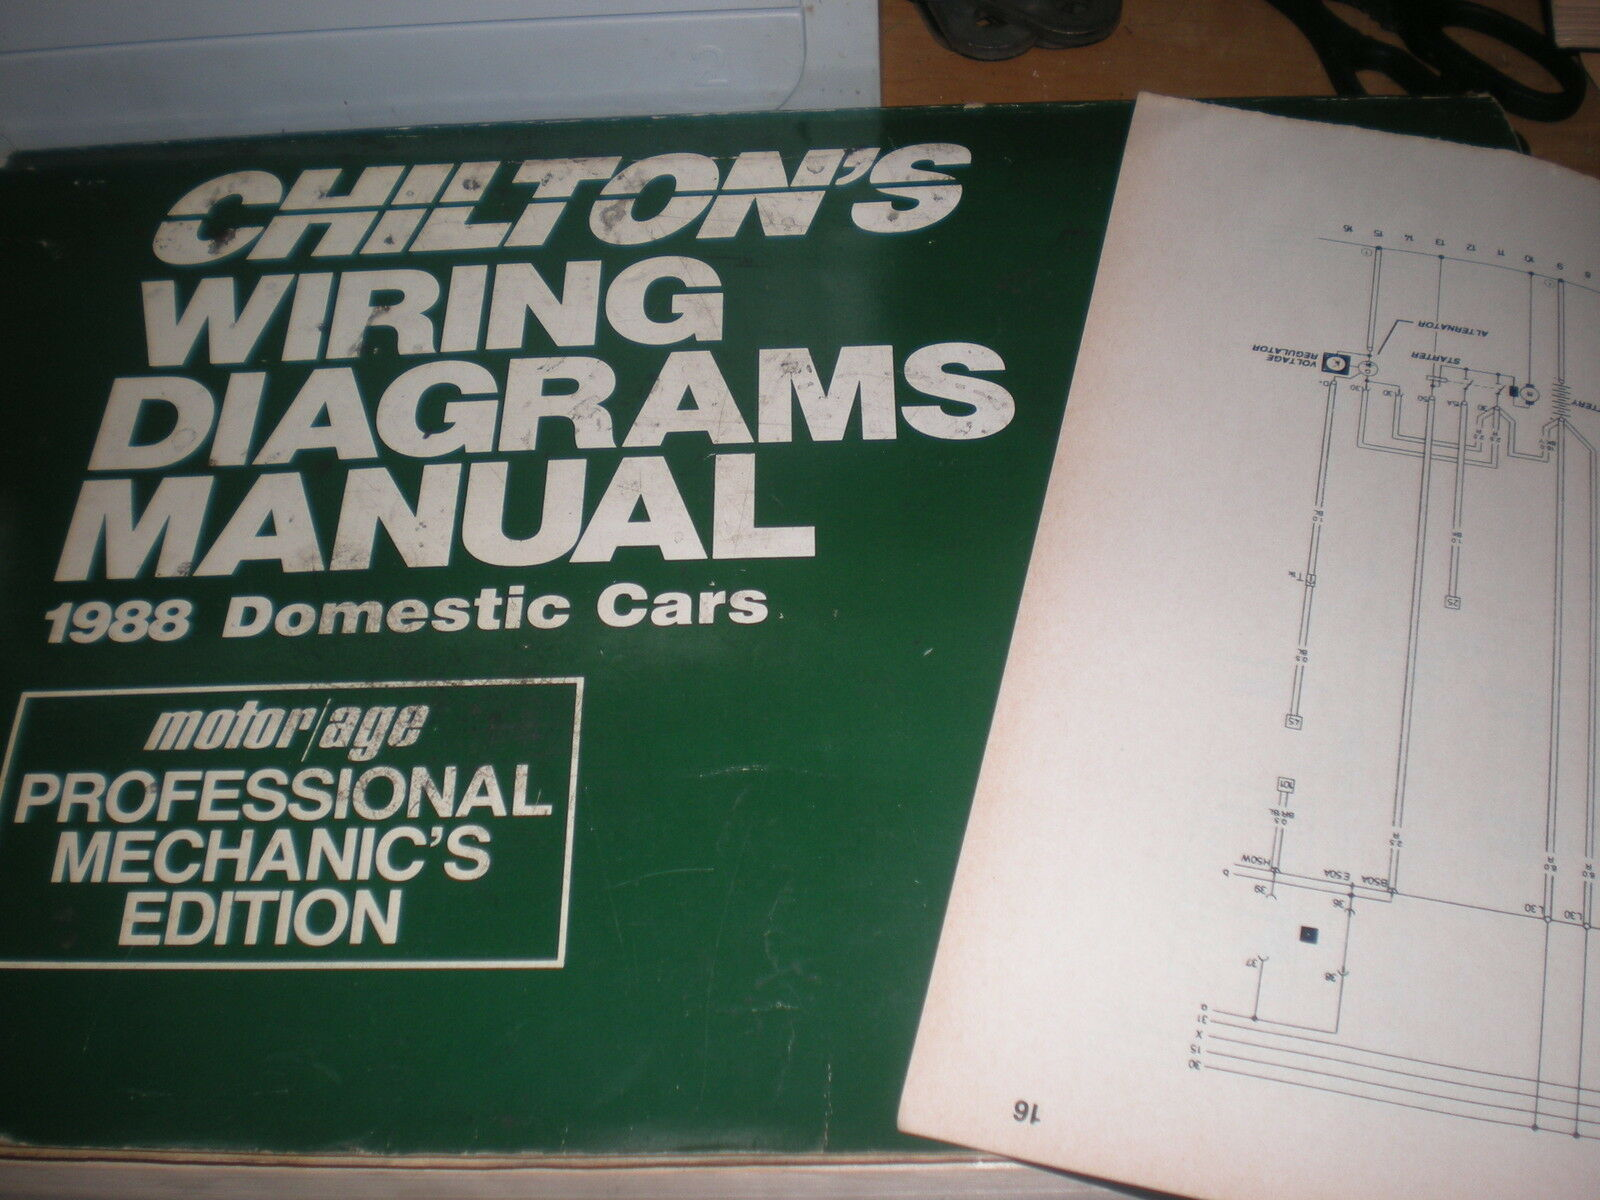 1988 Ford Festiva Wiring Diagrams Schematics Manual Sheets Set 1990 Diagram 1 Of See More